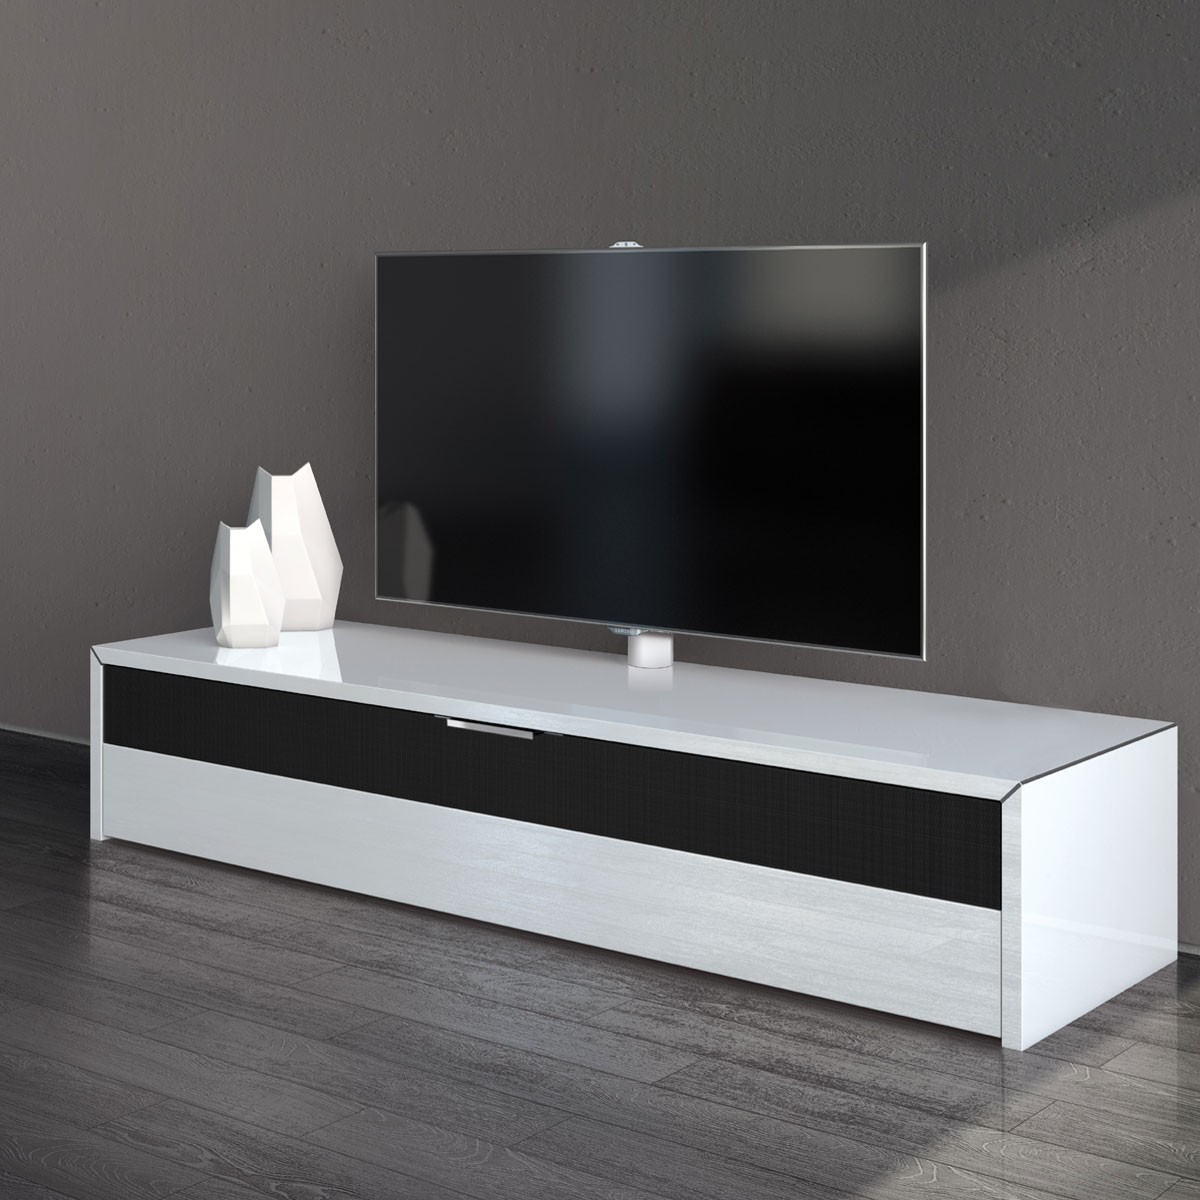 geschlossene tv m bel archive seite 2 von 3 tv m bel und hifi m bel guide. Black Bedroom Furniture Sets. Home Design Ideas